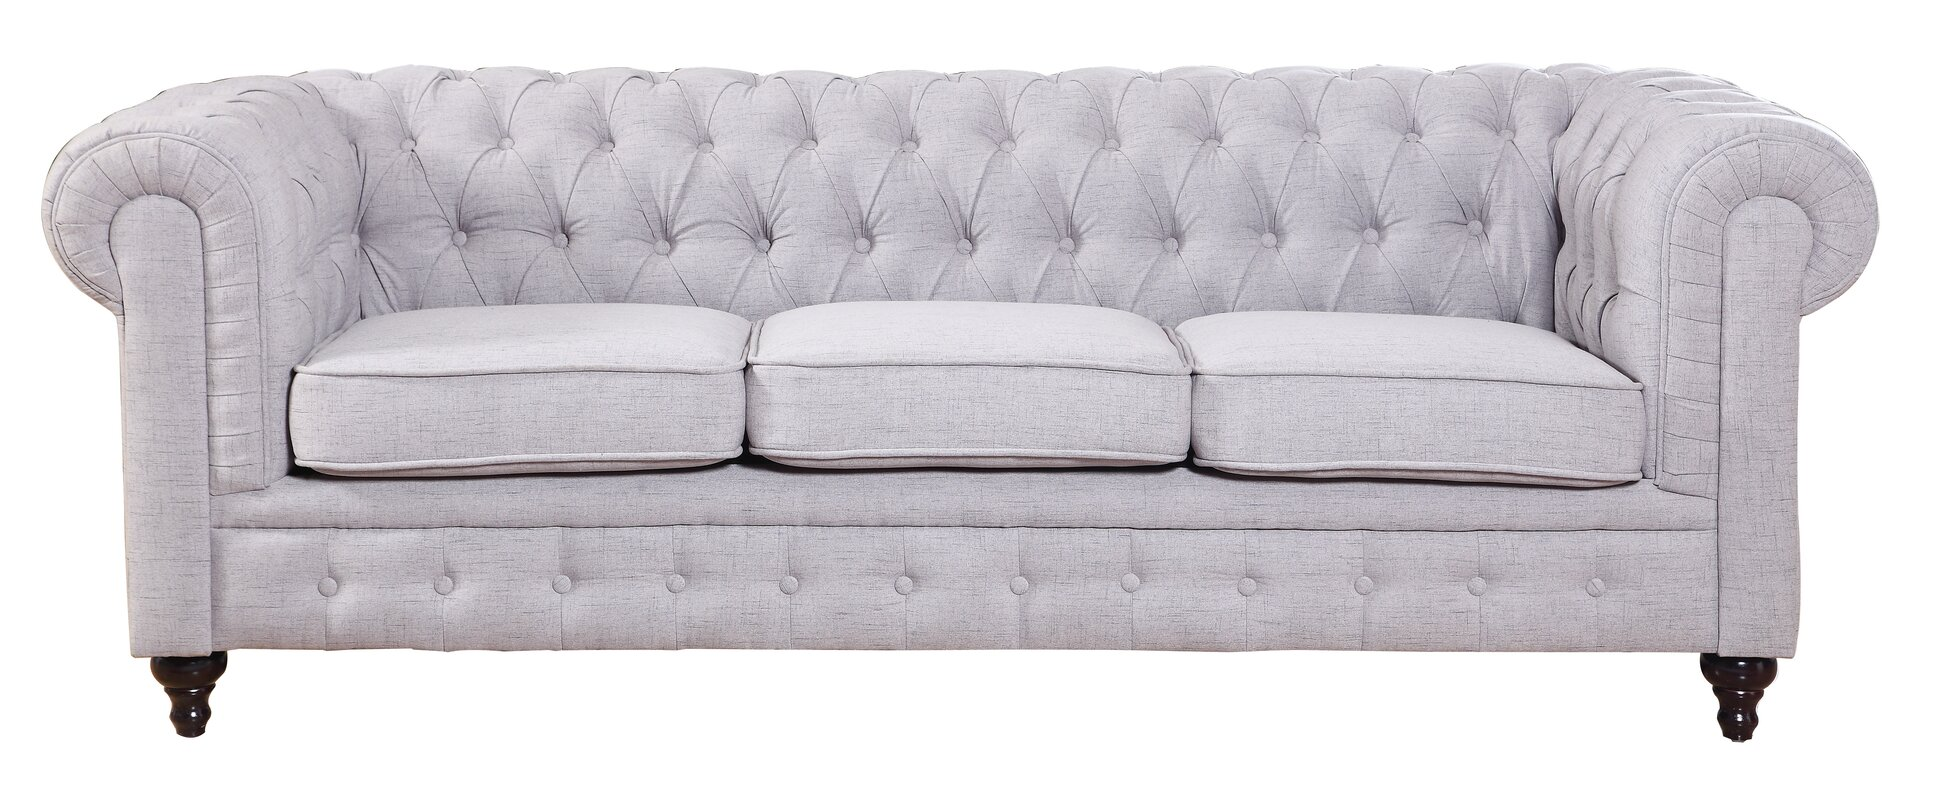 Elina Classic Tufted Linen Fabric Chesterfield Sofa